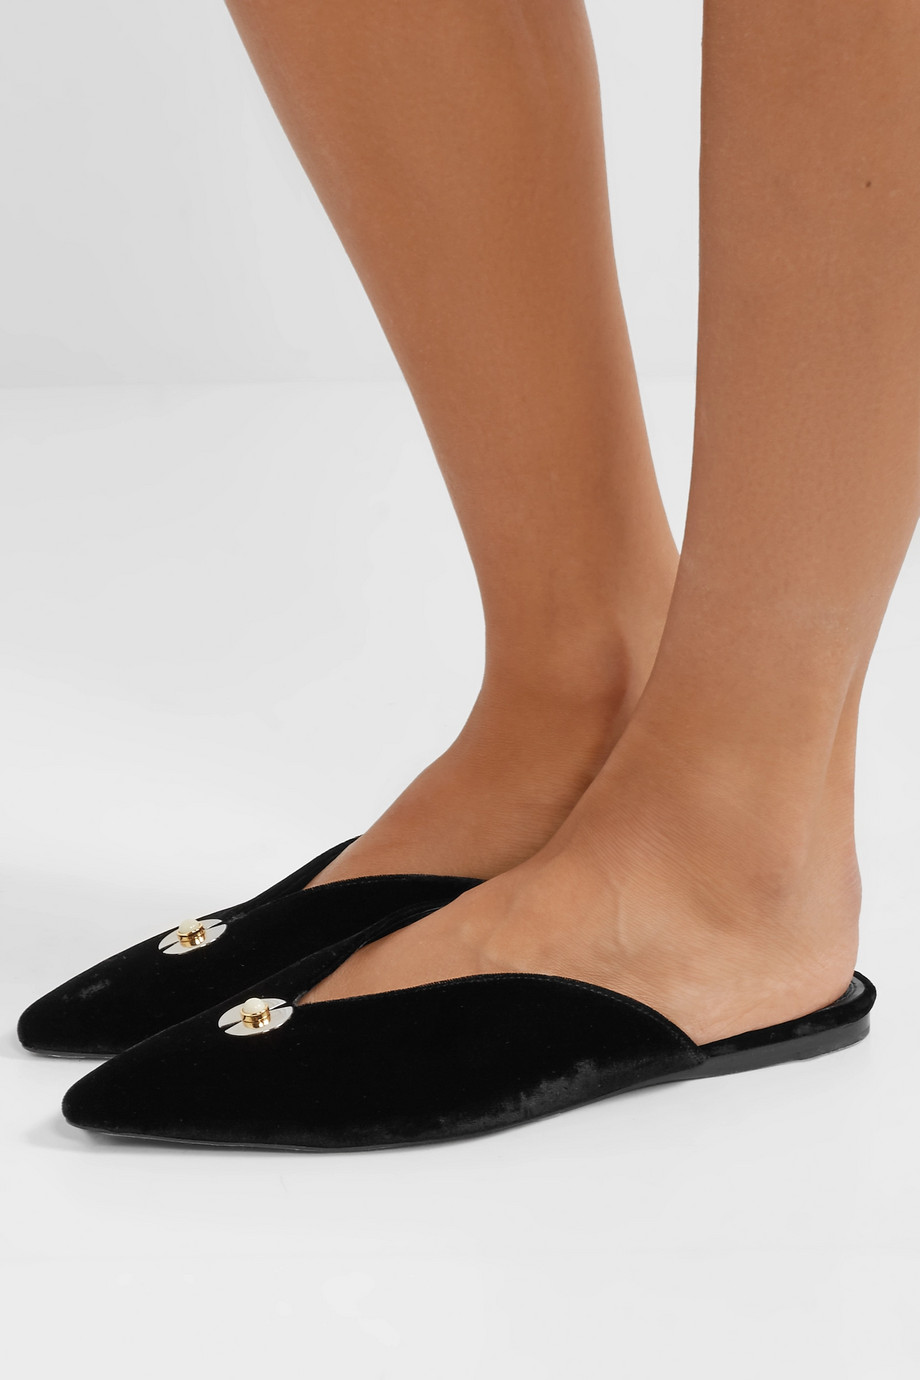 Velvet slippers Mercedes Castillo buy Velvet slippers Mercedes Castillo internet shop